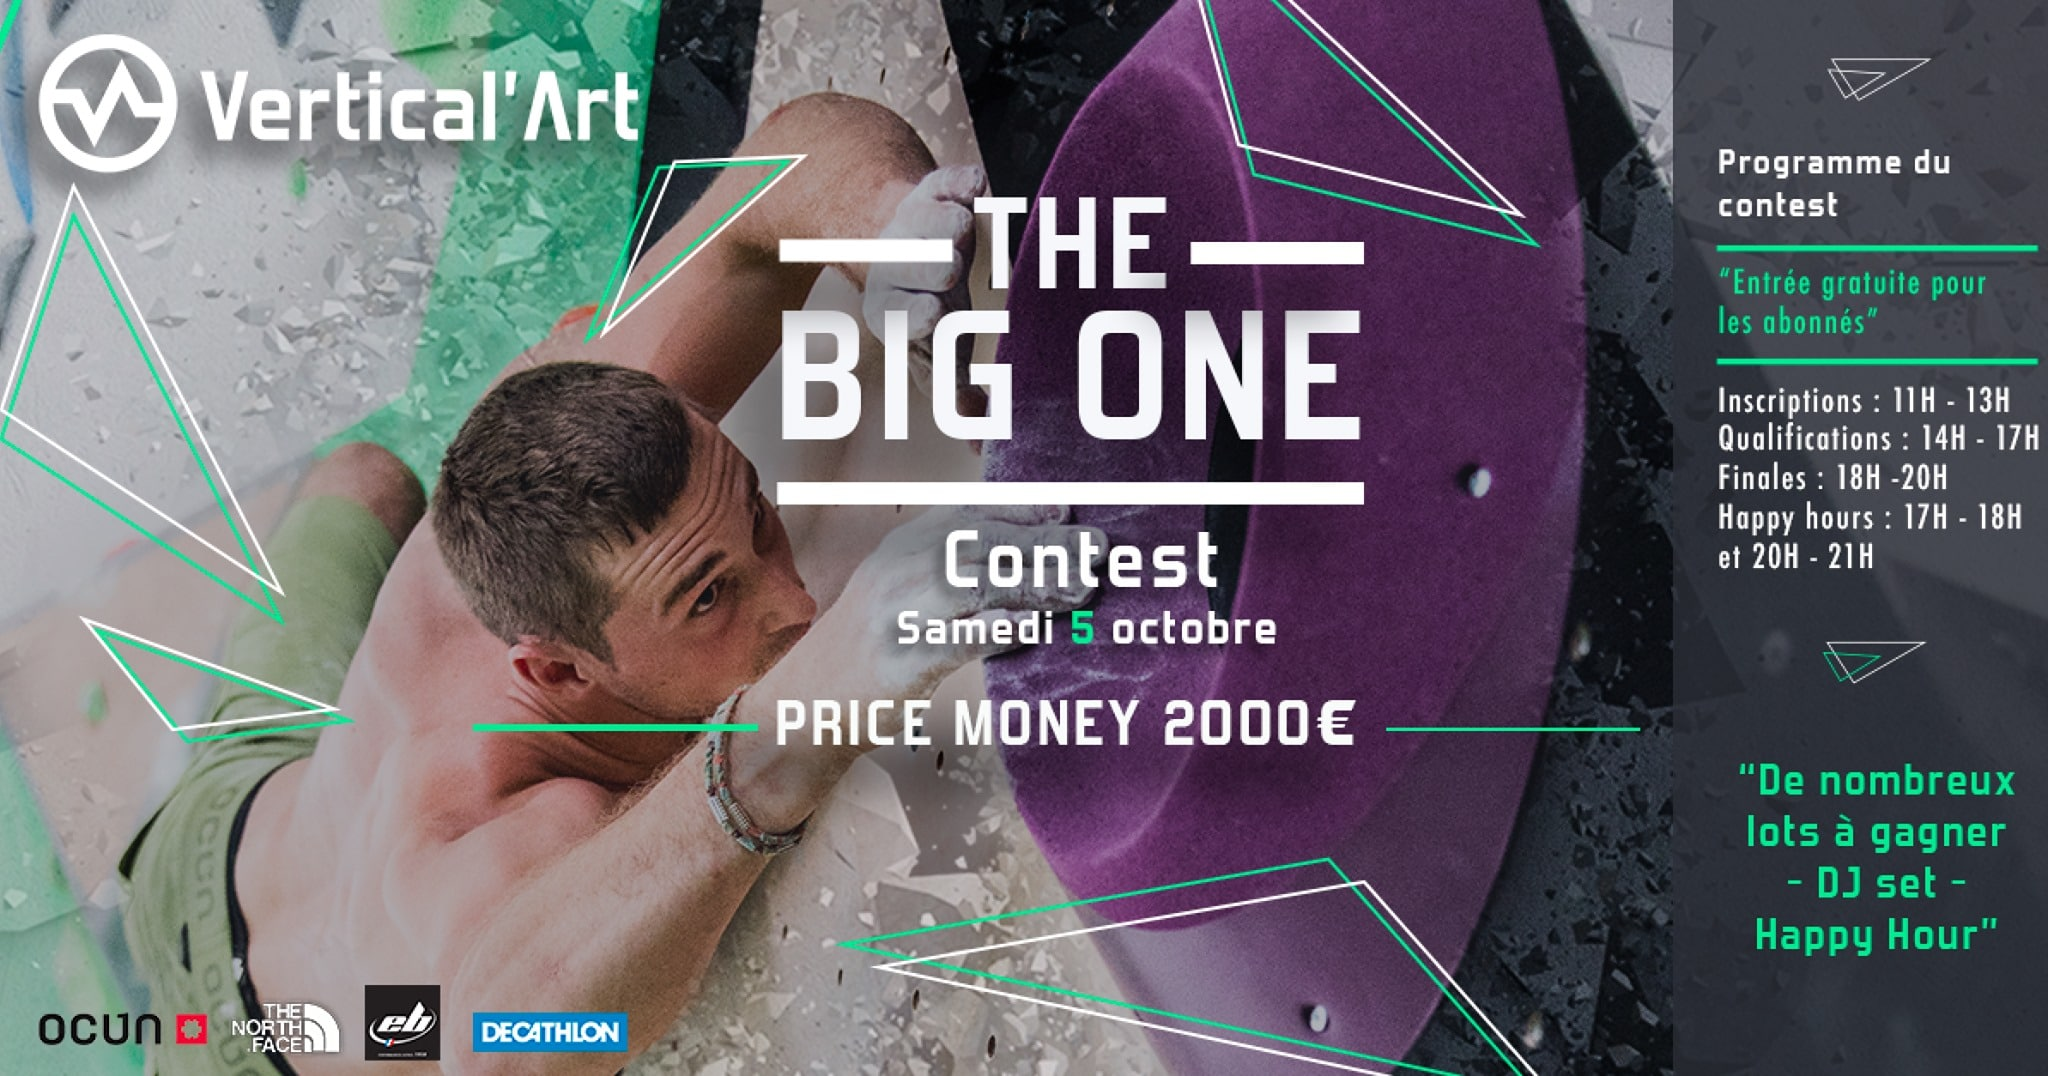 contest - the big one - Vertical'Art lille - lille - escalade de bloc - restaurant - bar - DJ - price money - happy hour - compétition - grimpe - escalade